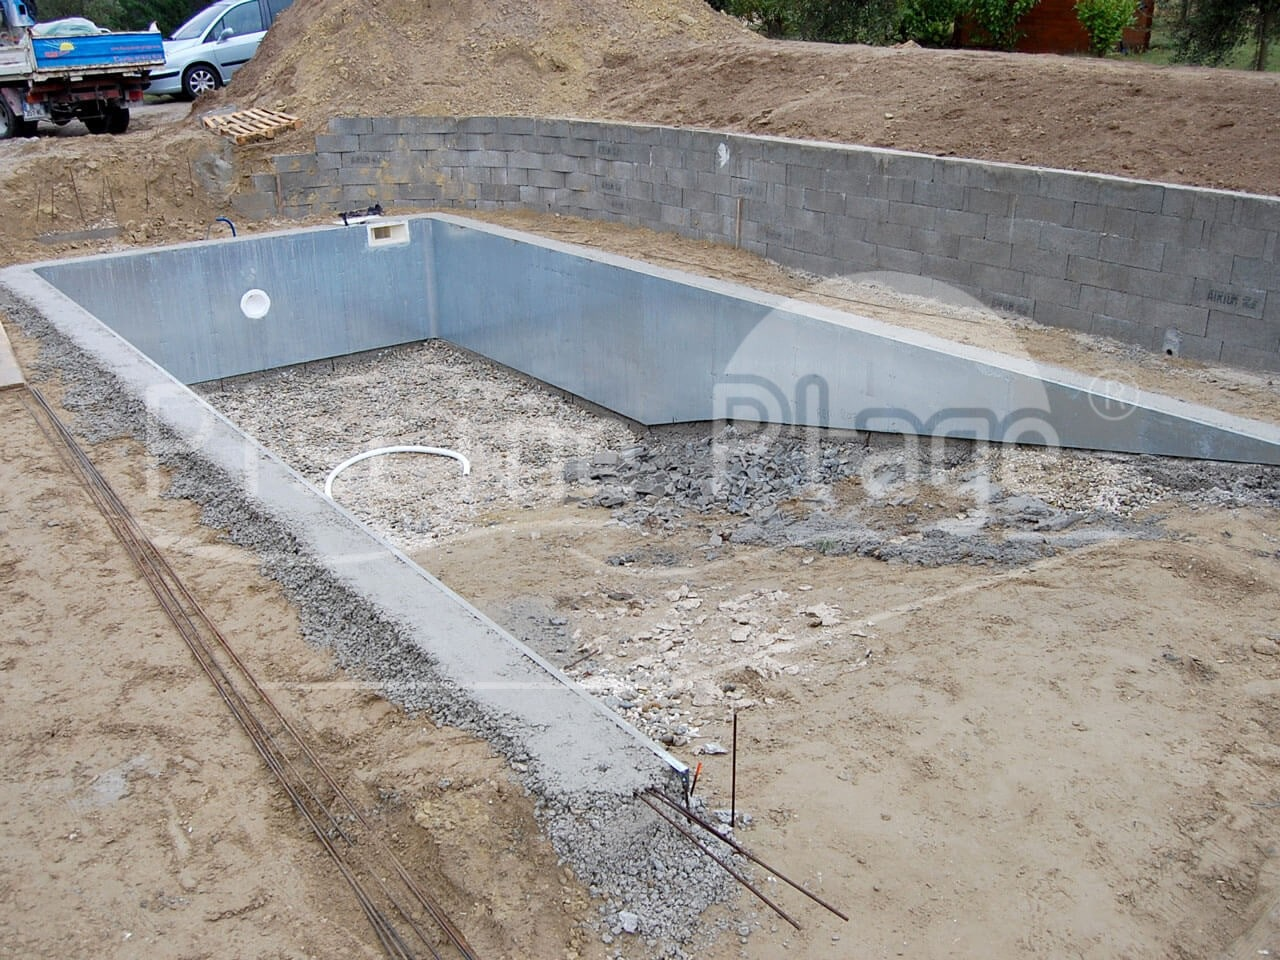 Notre technique de construction piscine plage for Construction une piscine